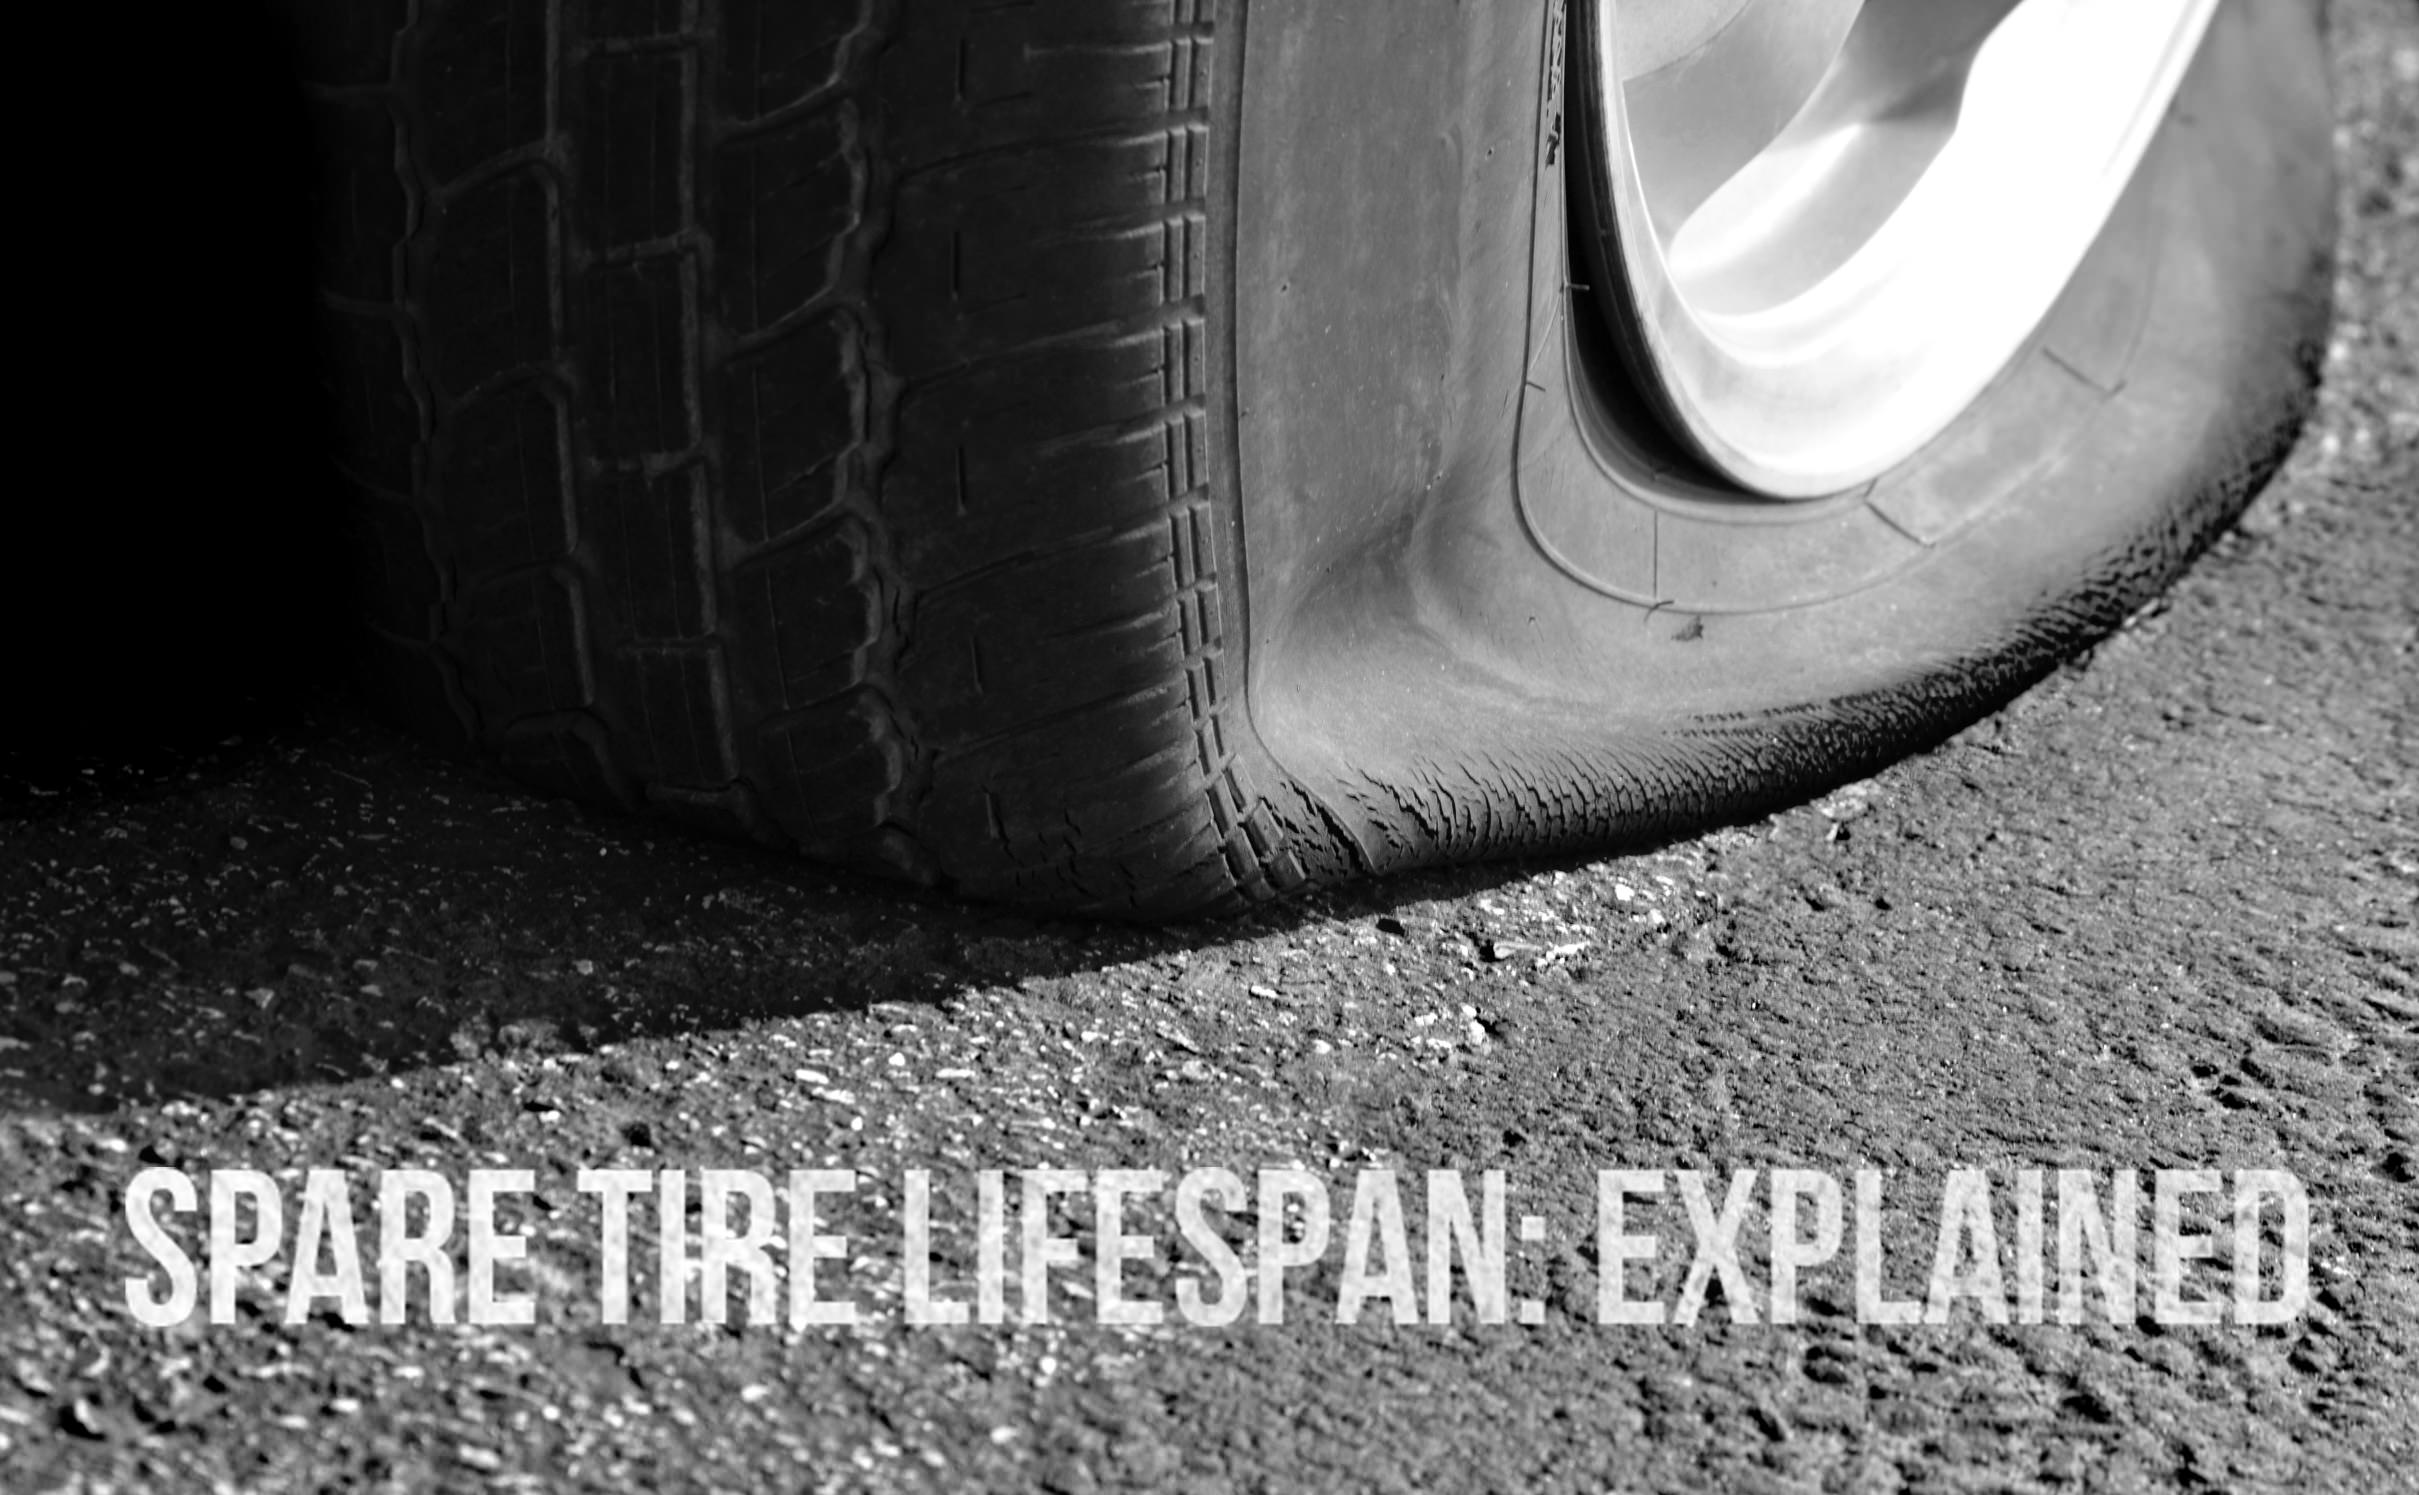 How long can I drive on my spare tire?